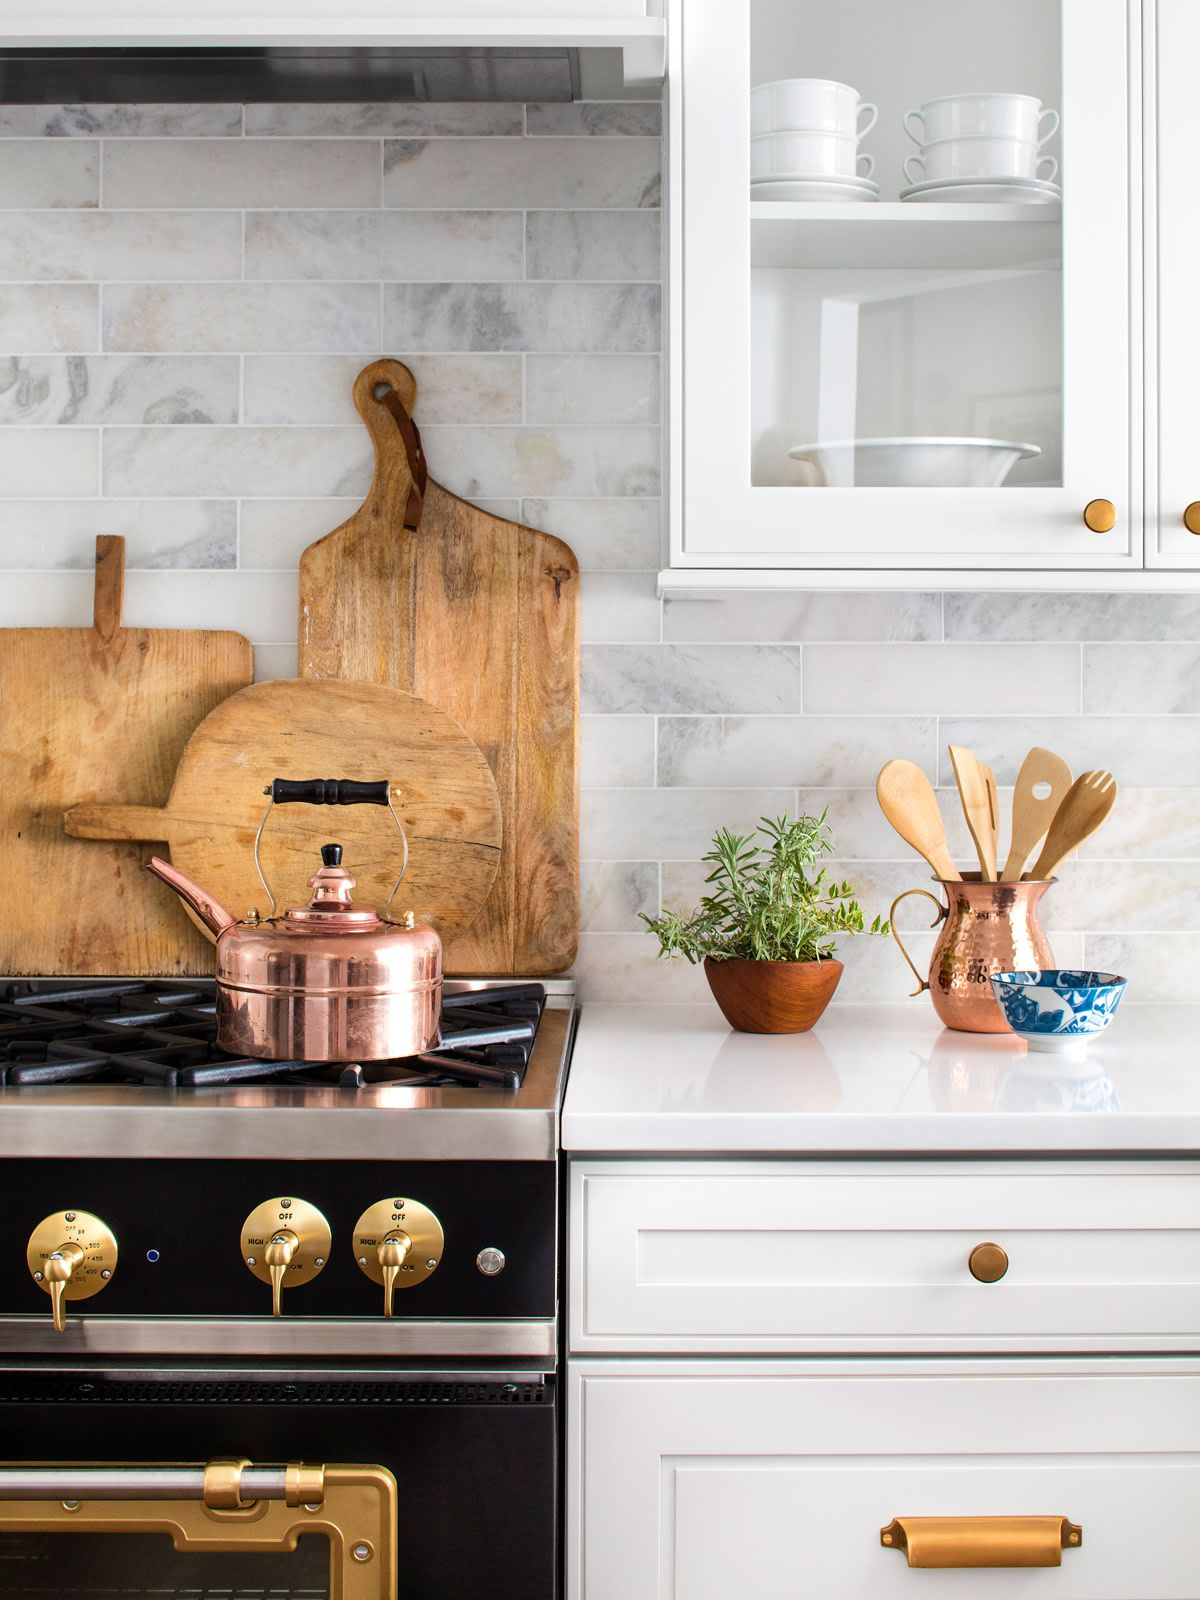 6 Cabinet Styles For Your Next Kitchen Reno In 2020 Kitchen Cabinet Styles Cabinet Styles Kitchen Cabinets